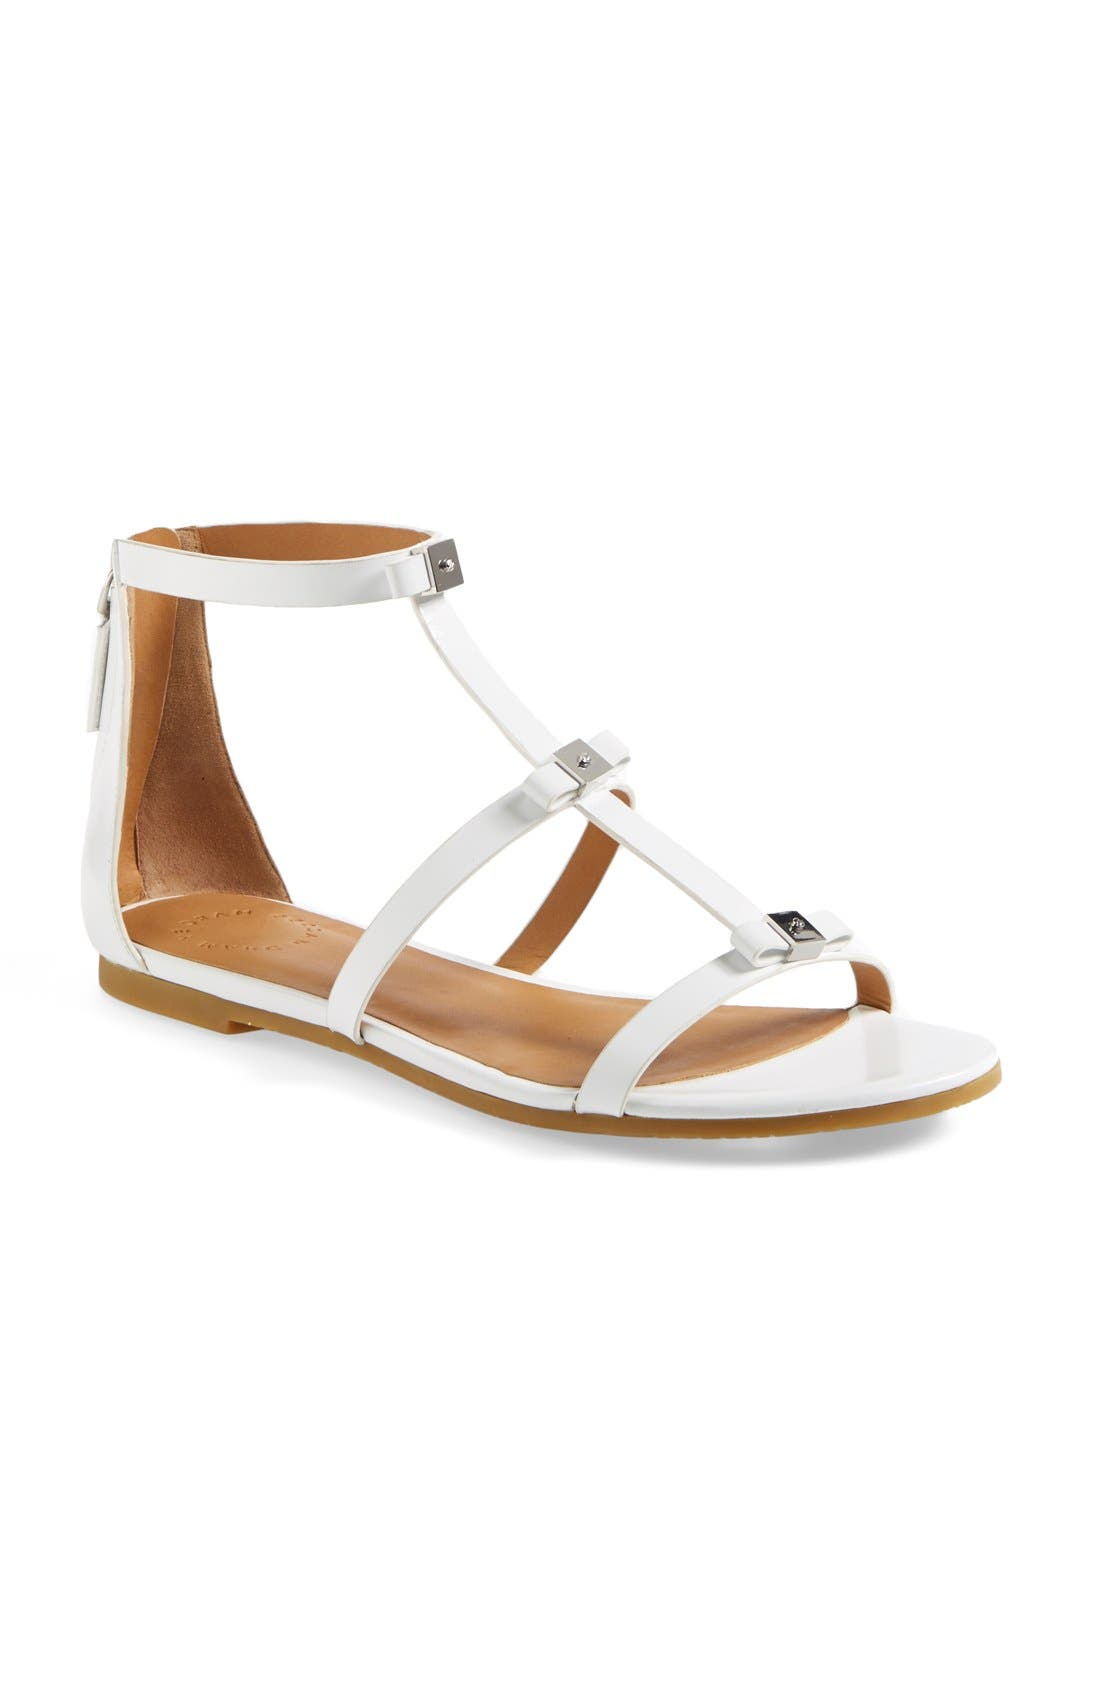 Alternate Image 1 Selected - MARC BY MARC JACOBS Cube Bow Leather Sandal (Women)